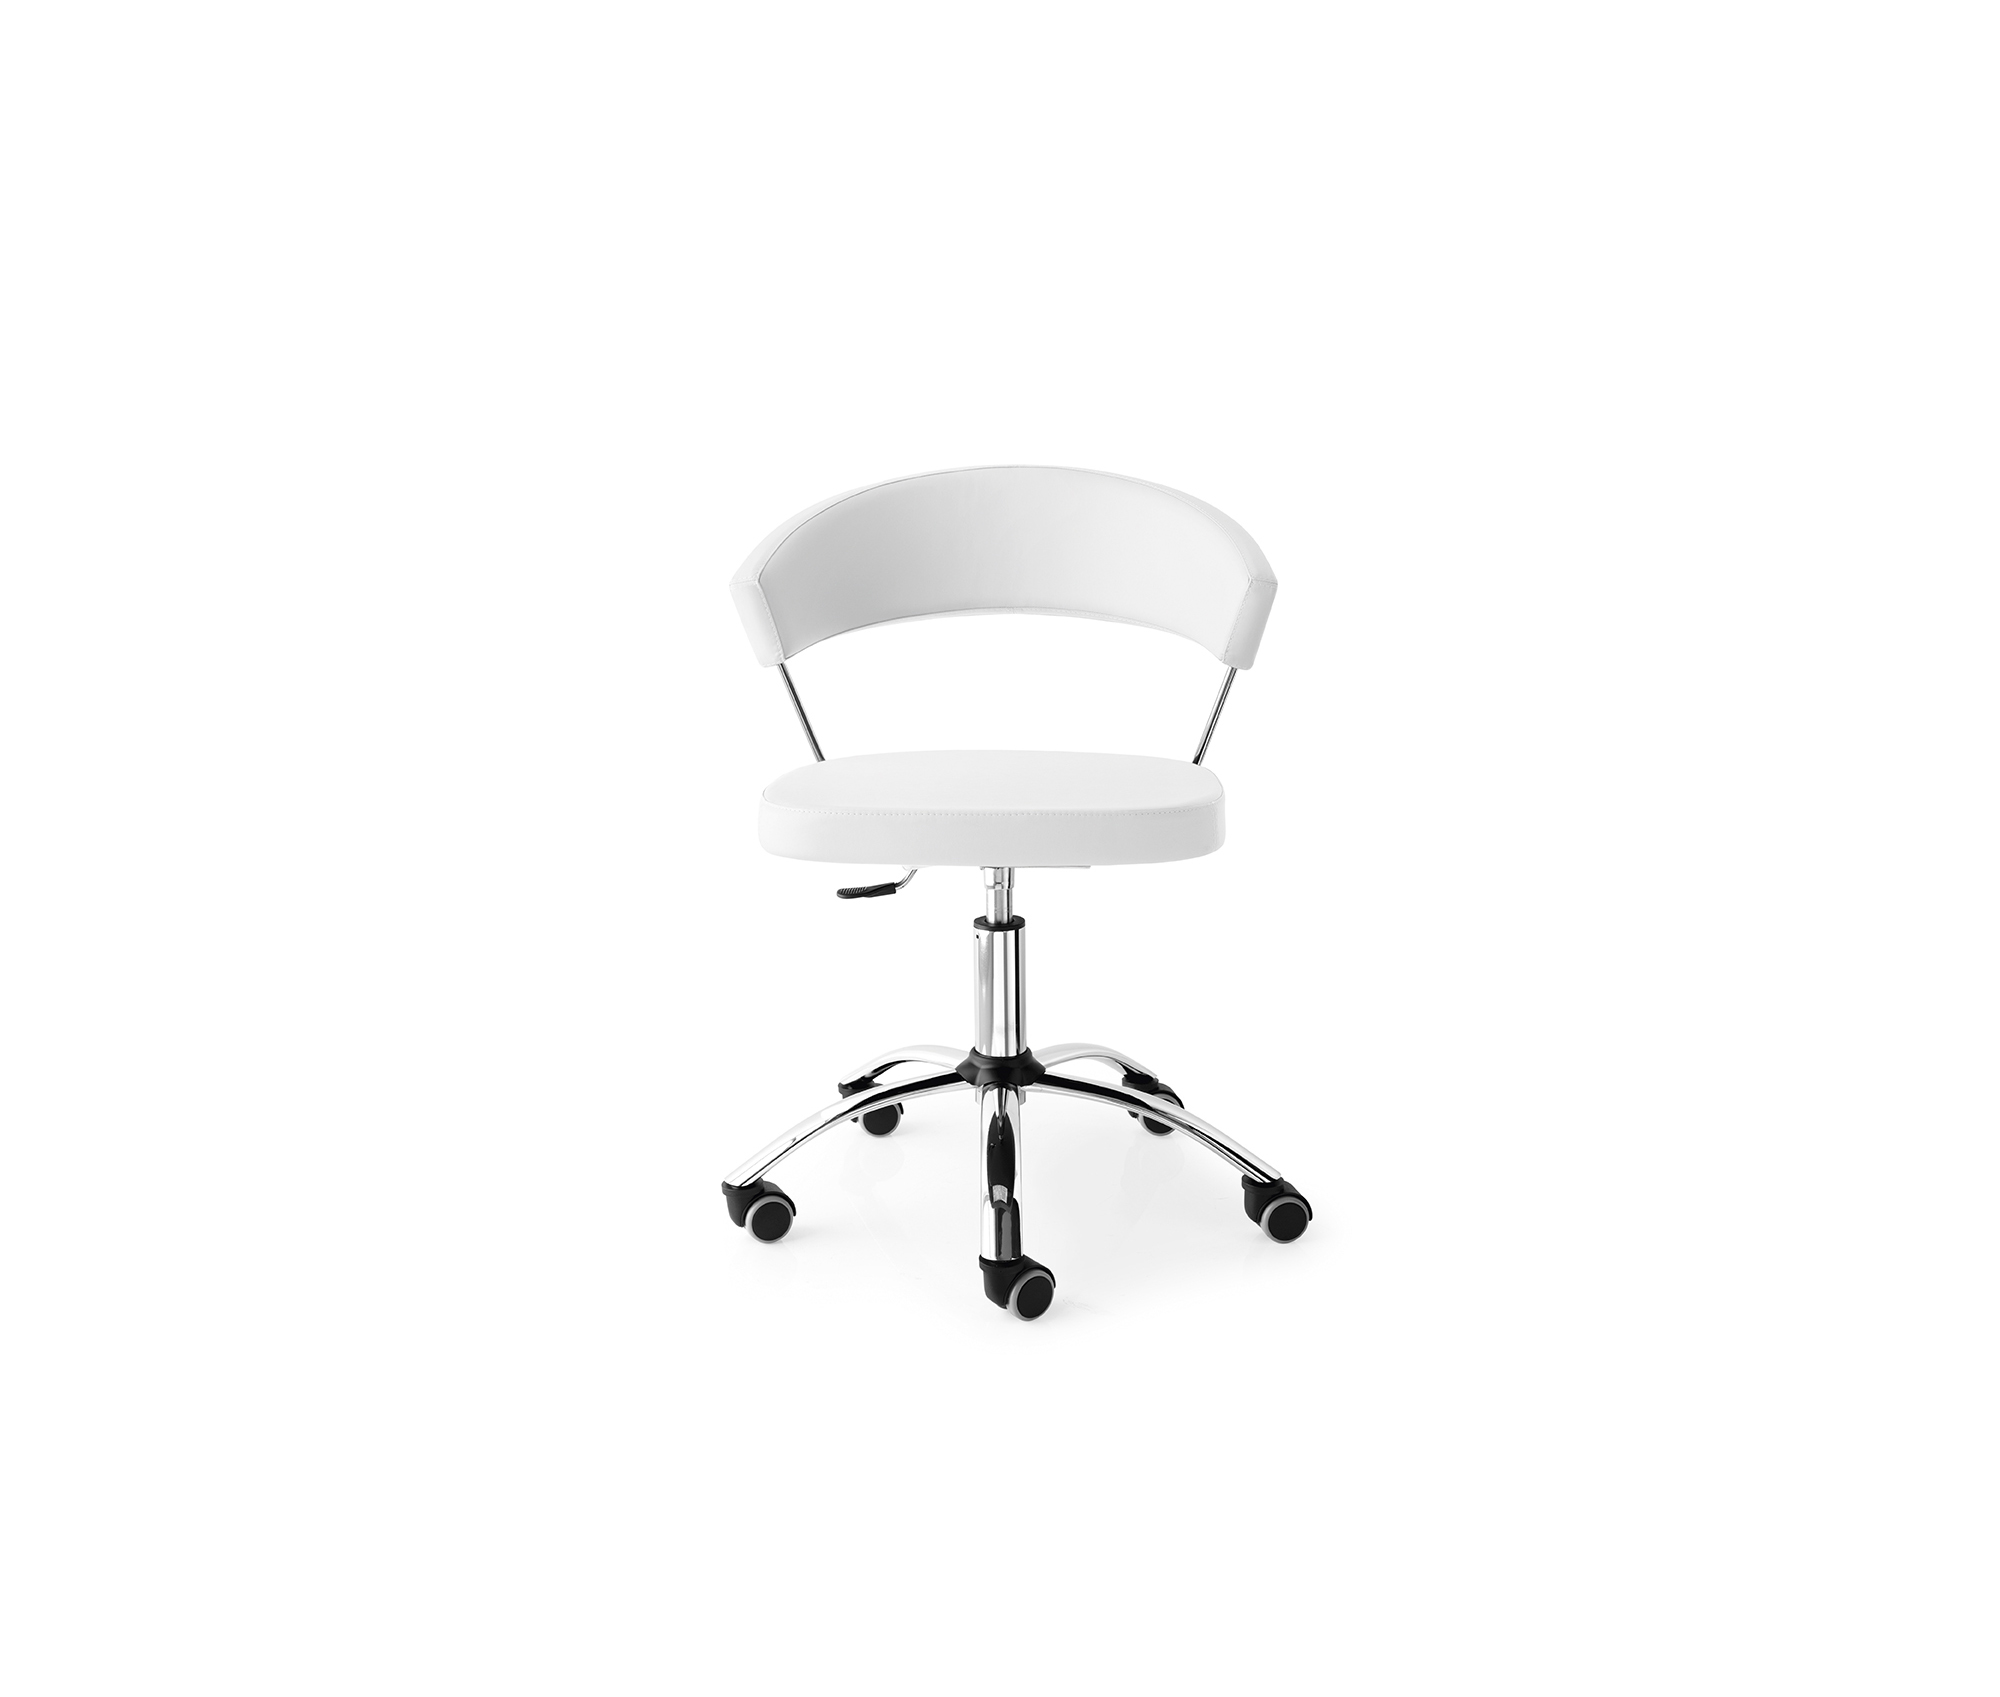 desk chair york hanging revit file new m collection